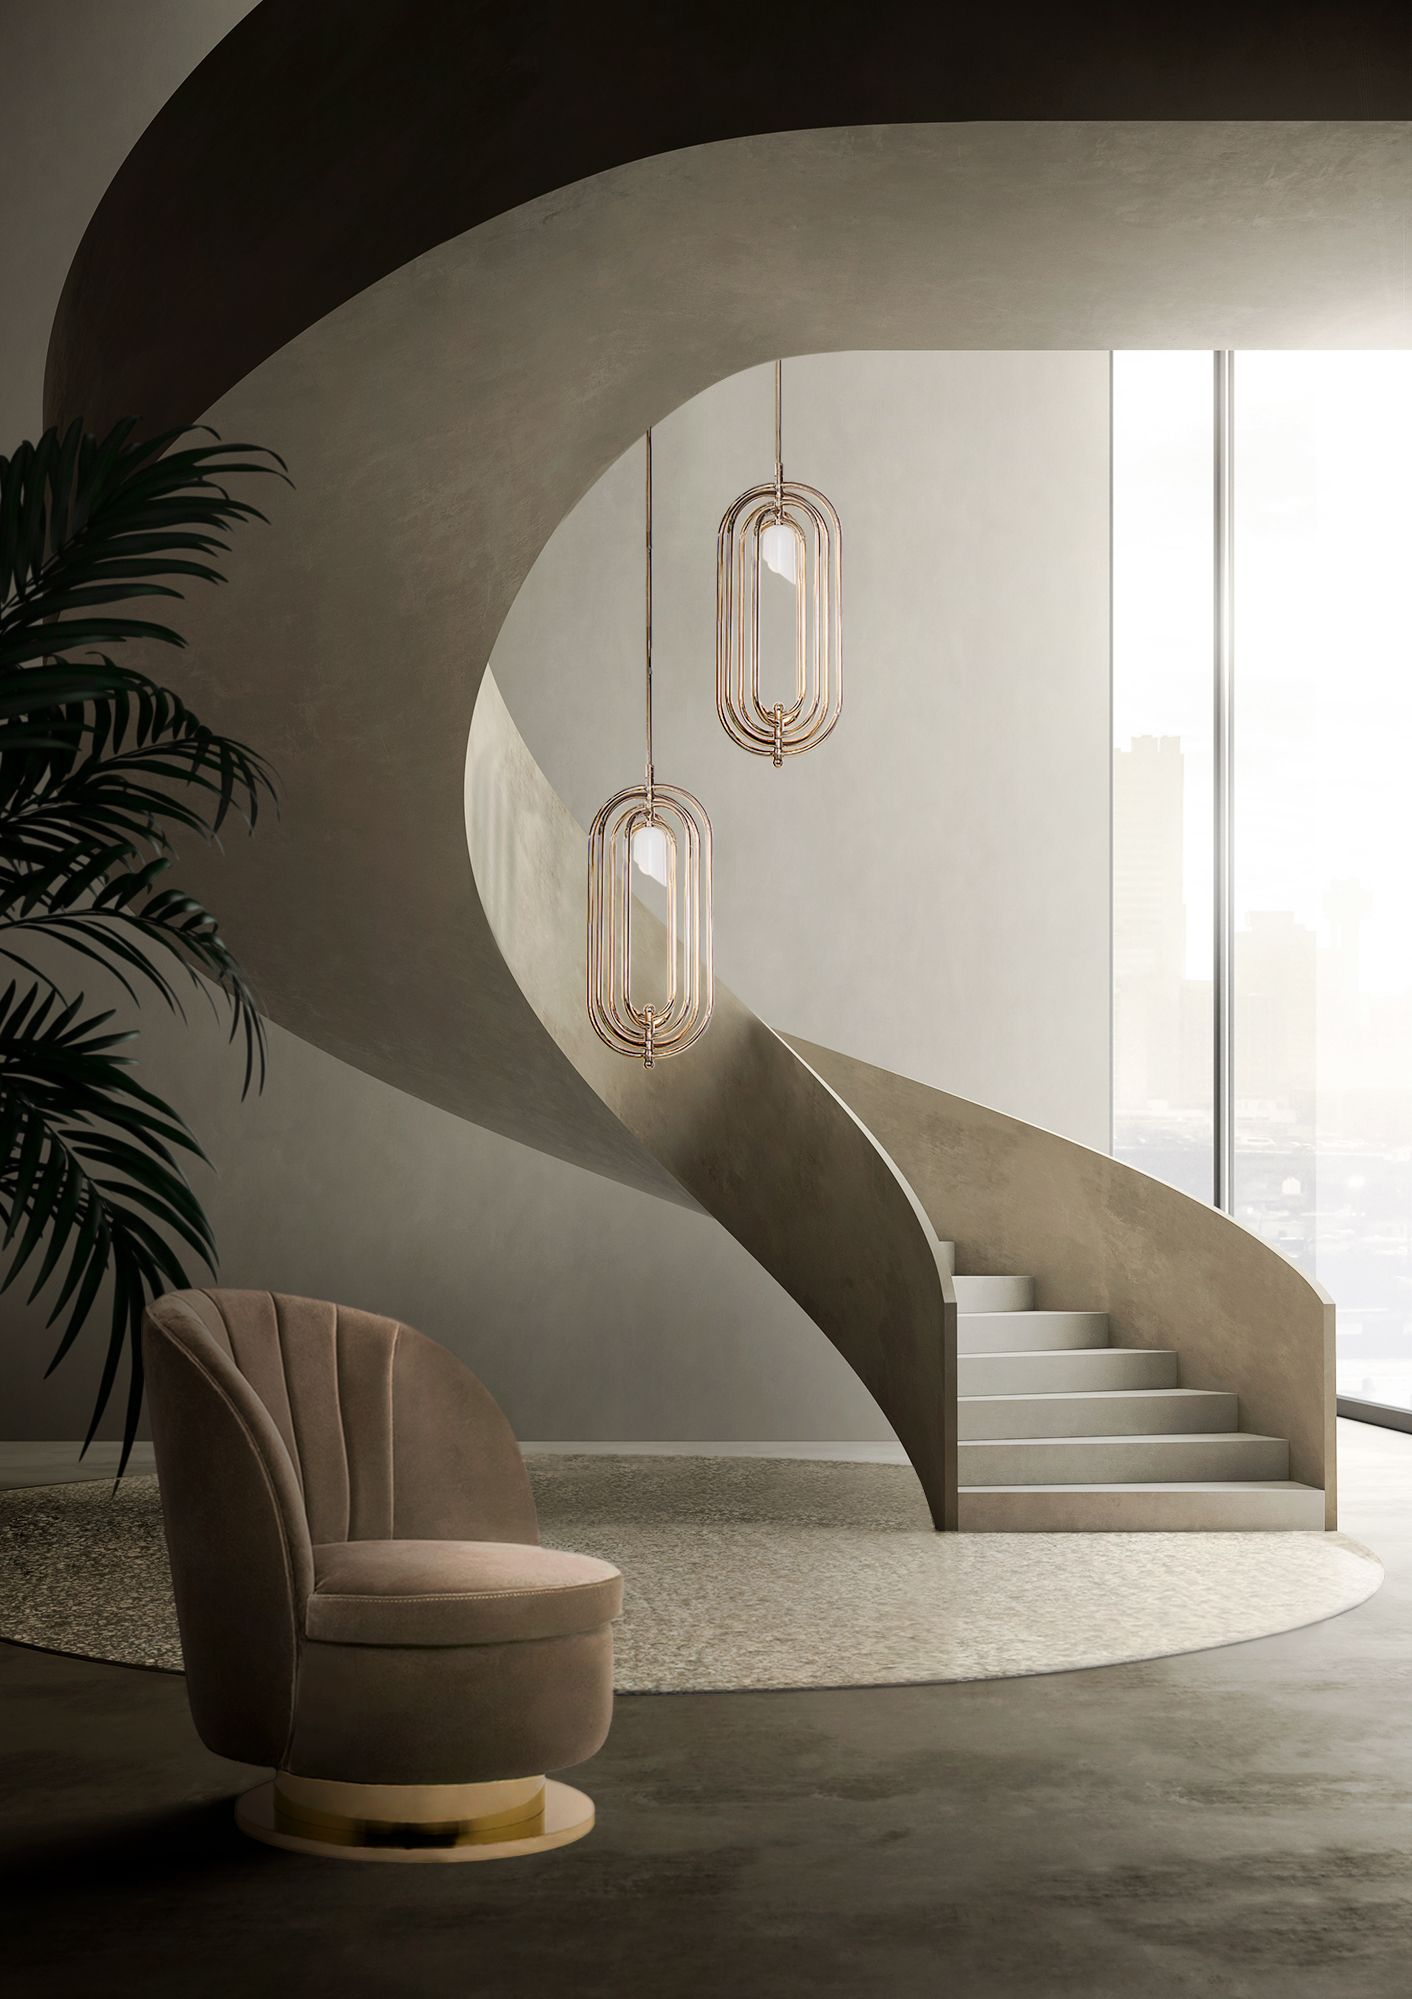 AMAZING ENTRANCE HALL WITH NEUTRAL COLORS